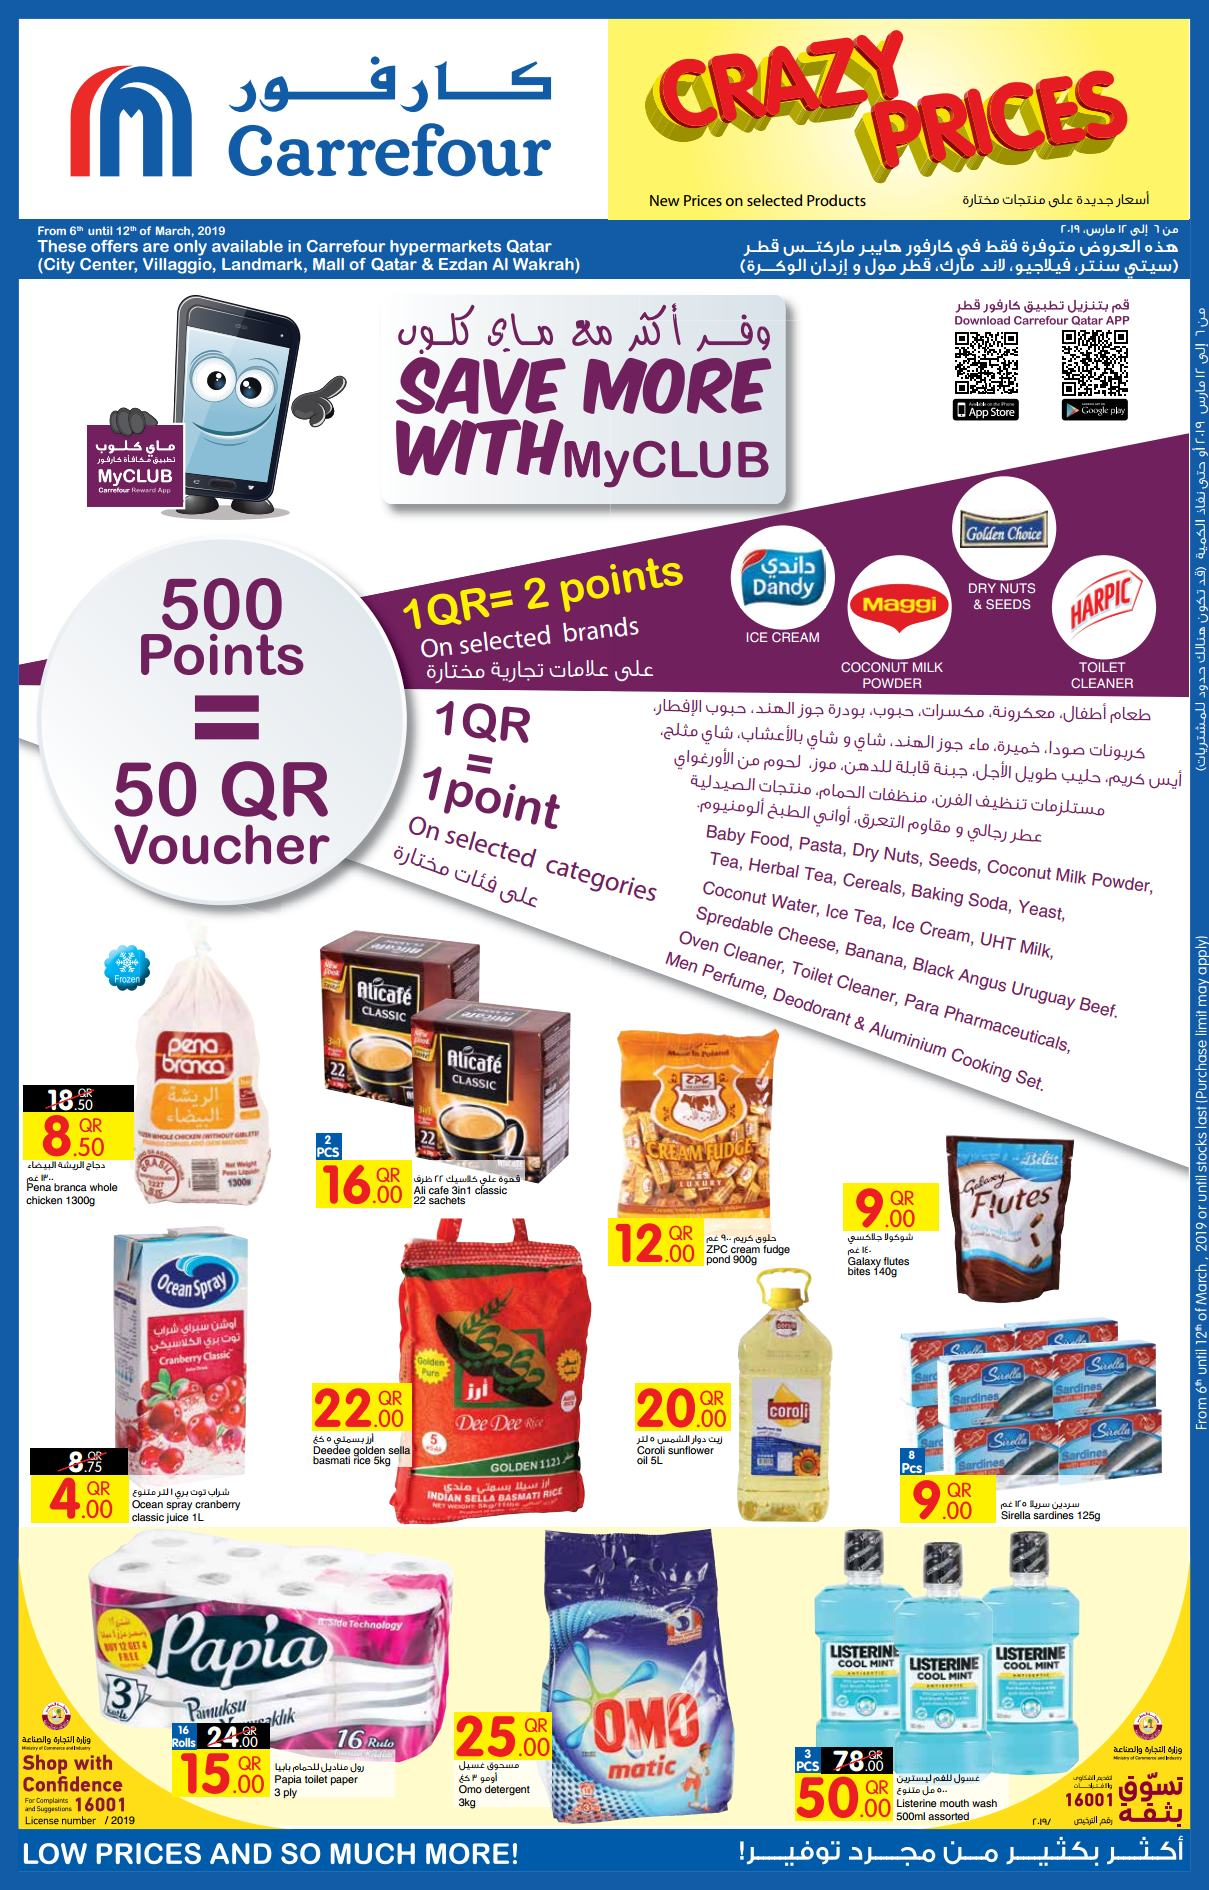 Carrefour Hyper Crazy Prices till 12-03